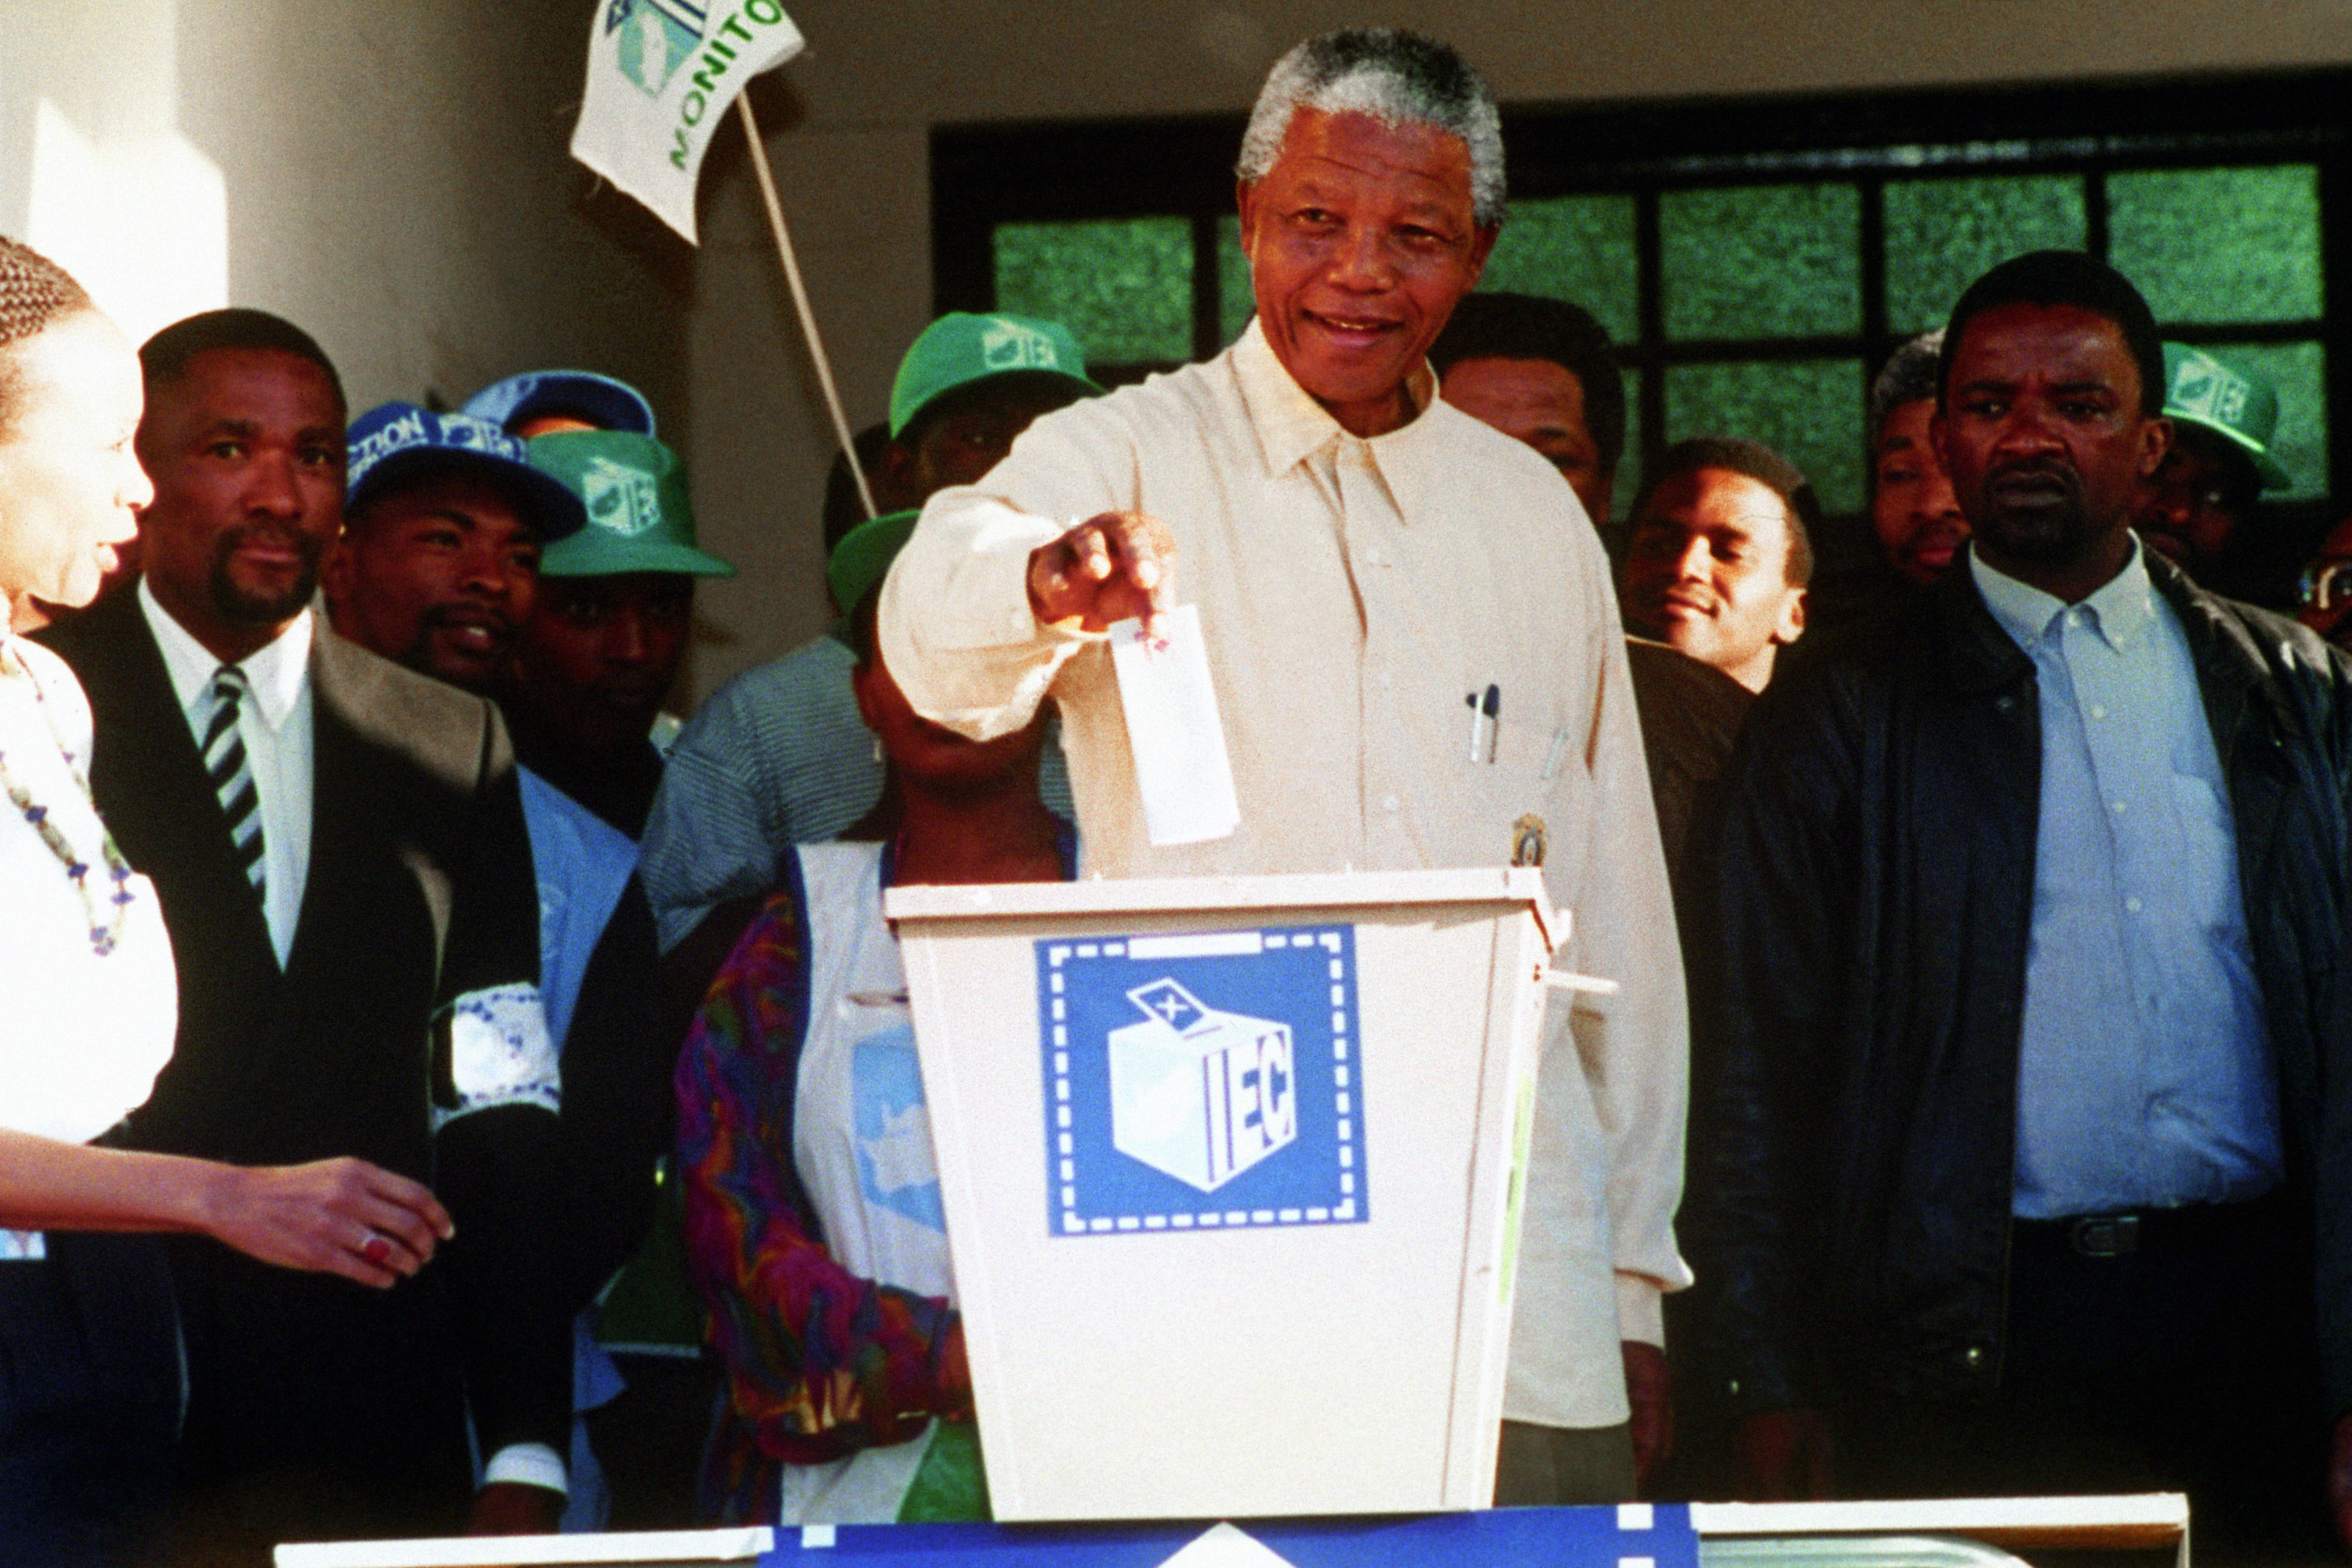 President Nelson Mandela casting his vote in the black township of Oshlange, near Durban, in the first all race elections. Former South African leader Nelson Mandela has died at the age of 95, the country's president, Jacob Zuma, has announced.